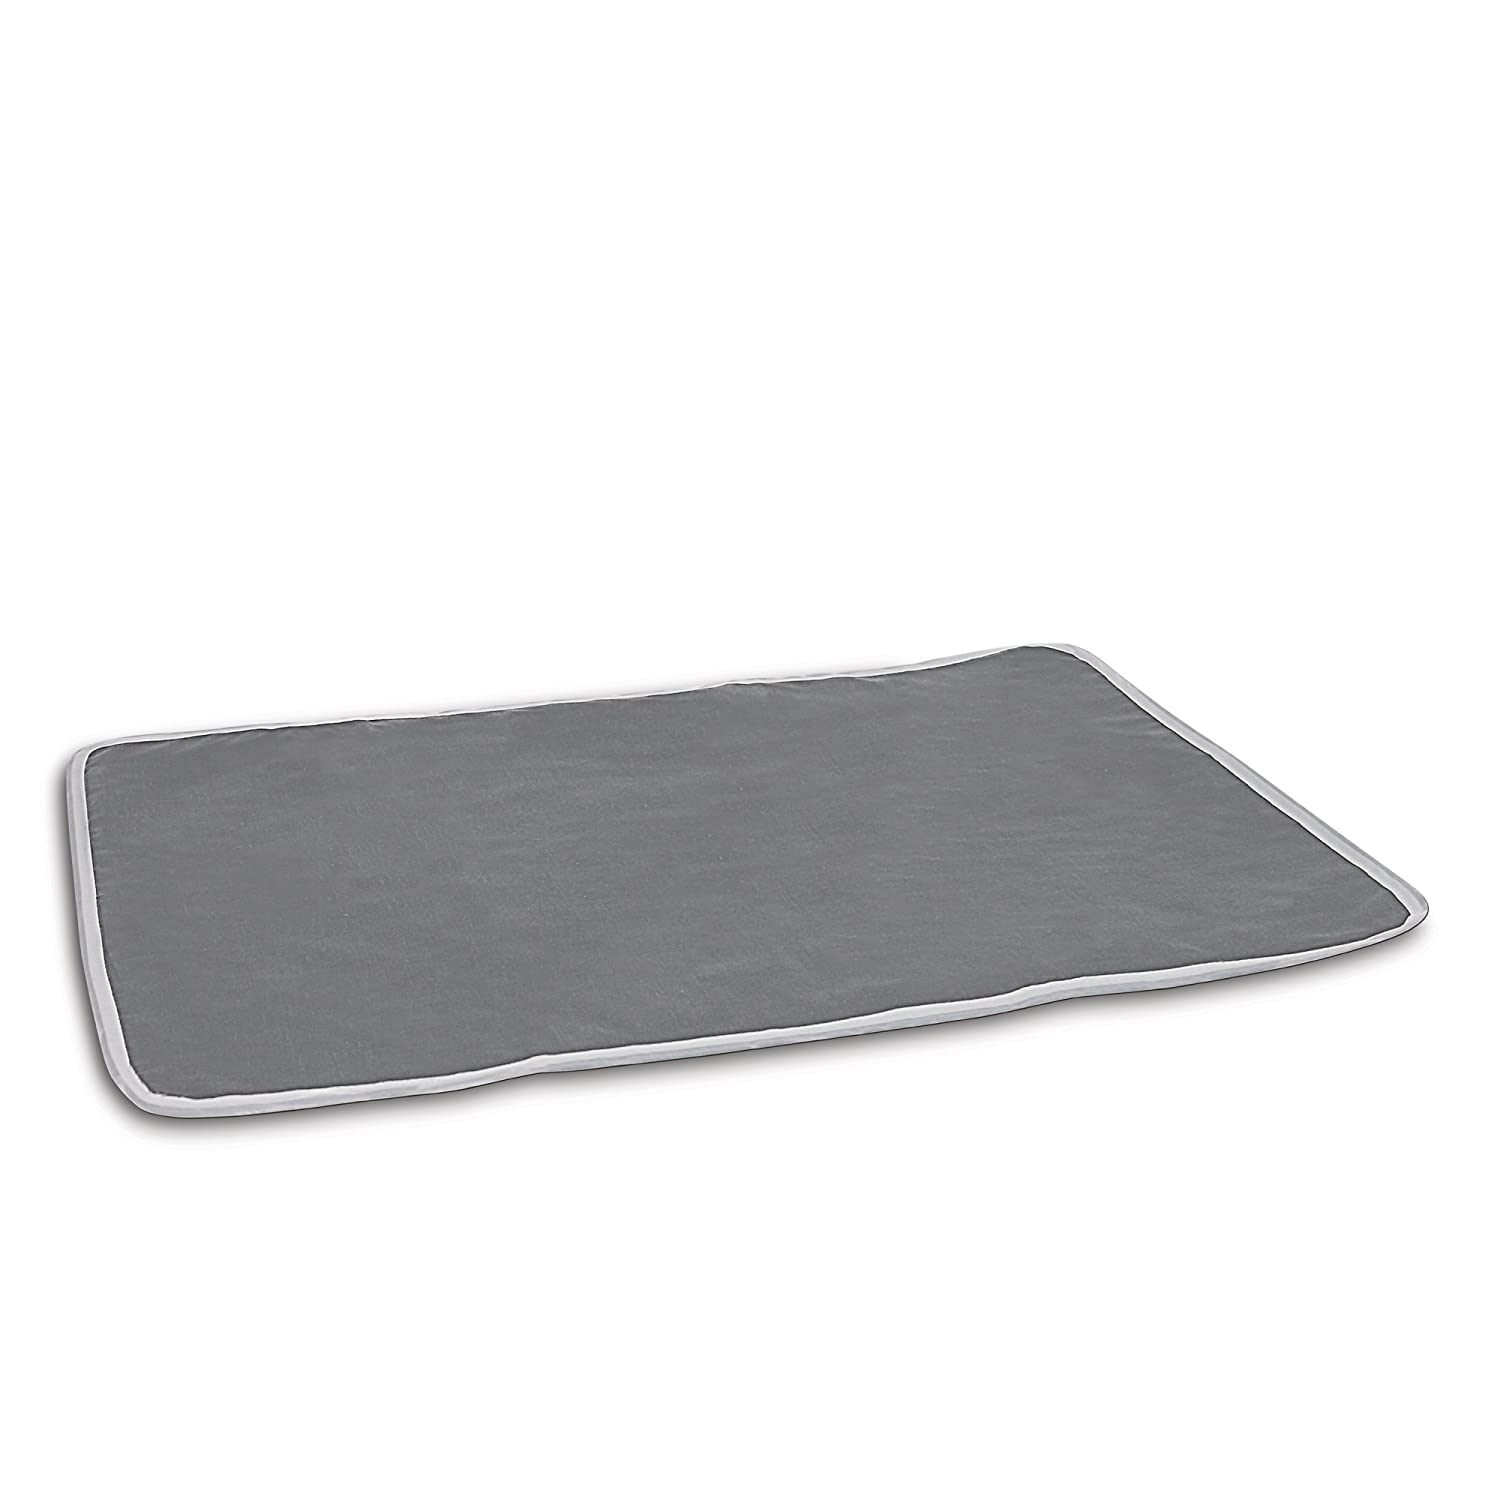 Homz Cotton Ironing Mat, Portable, Gray 1220253